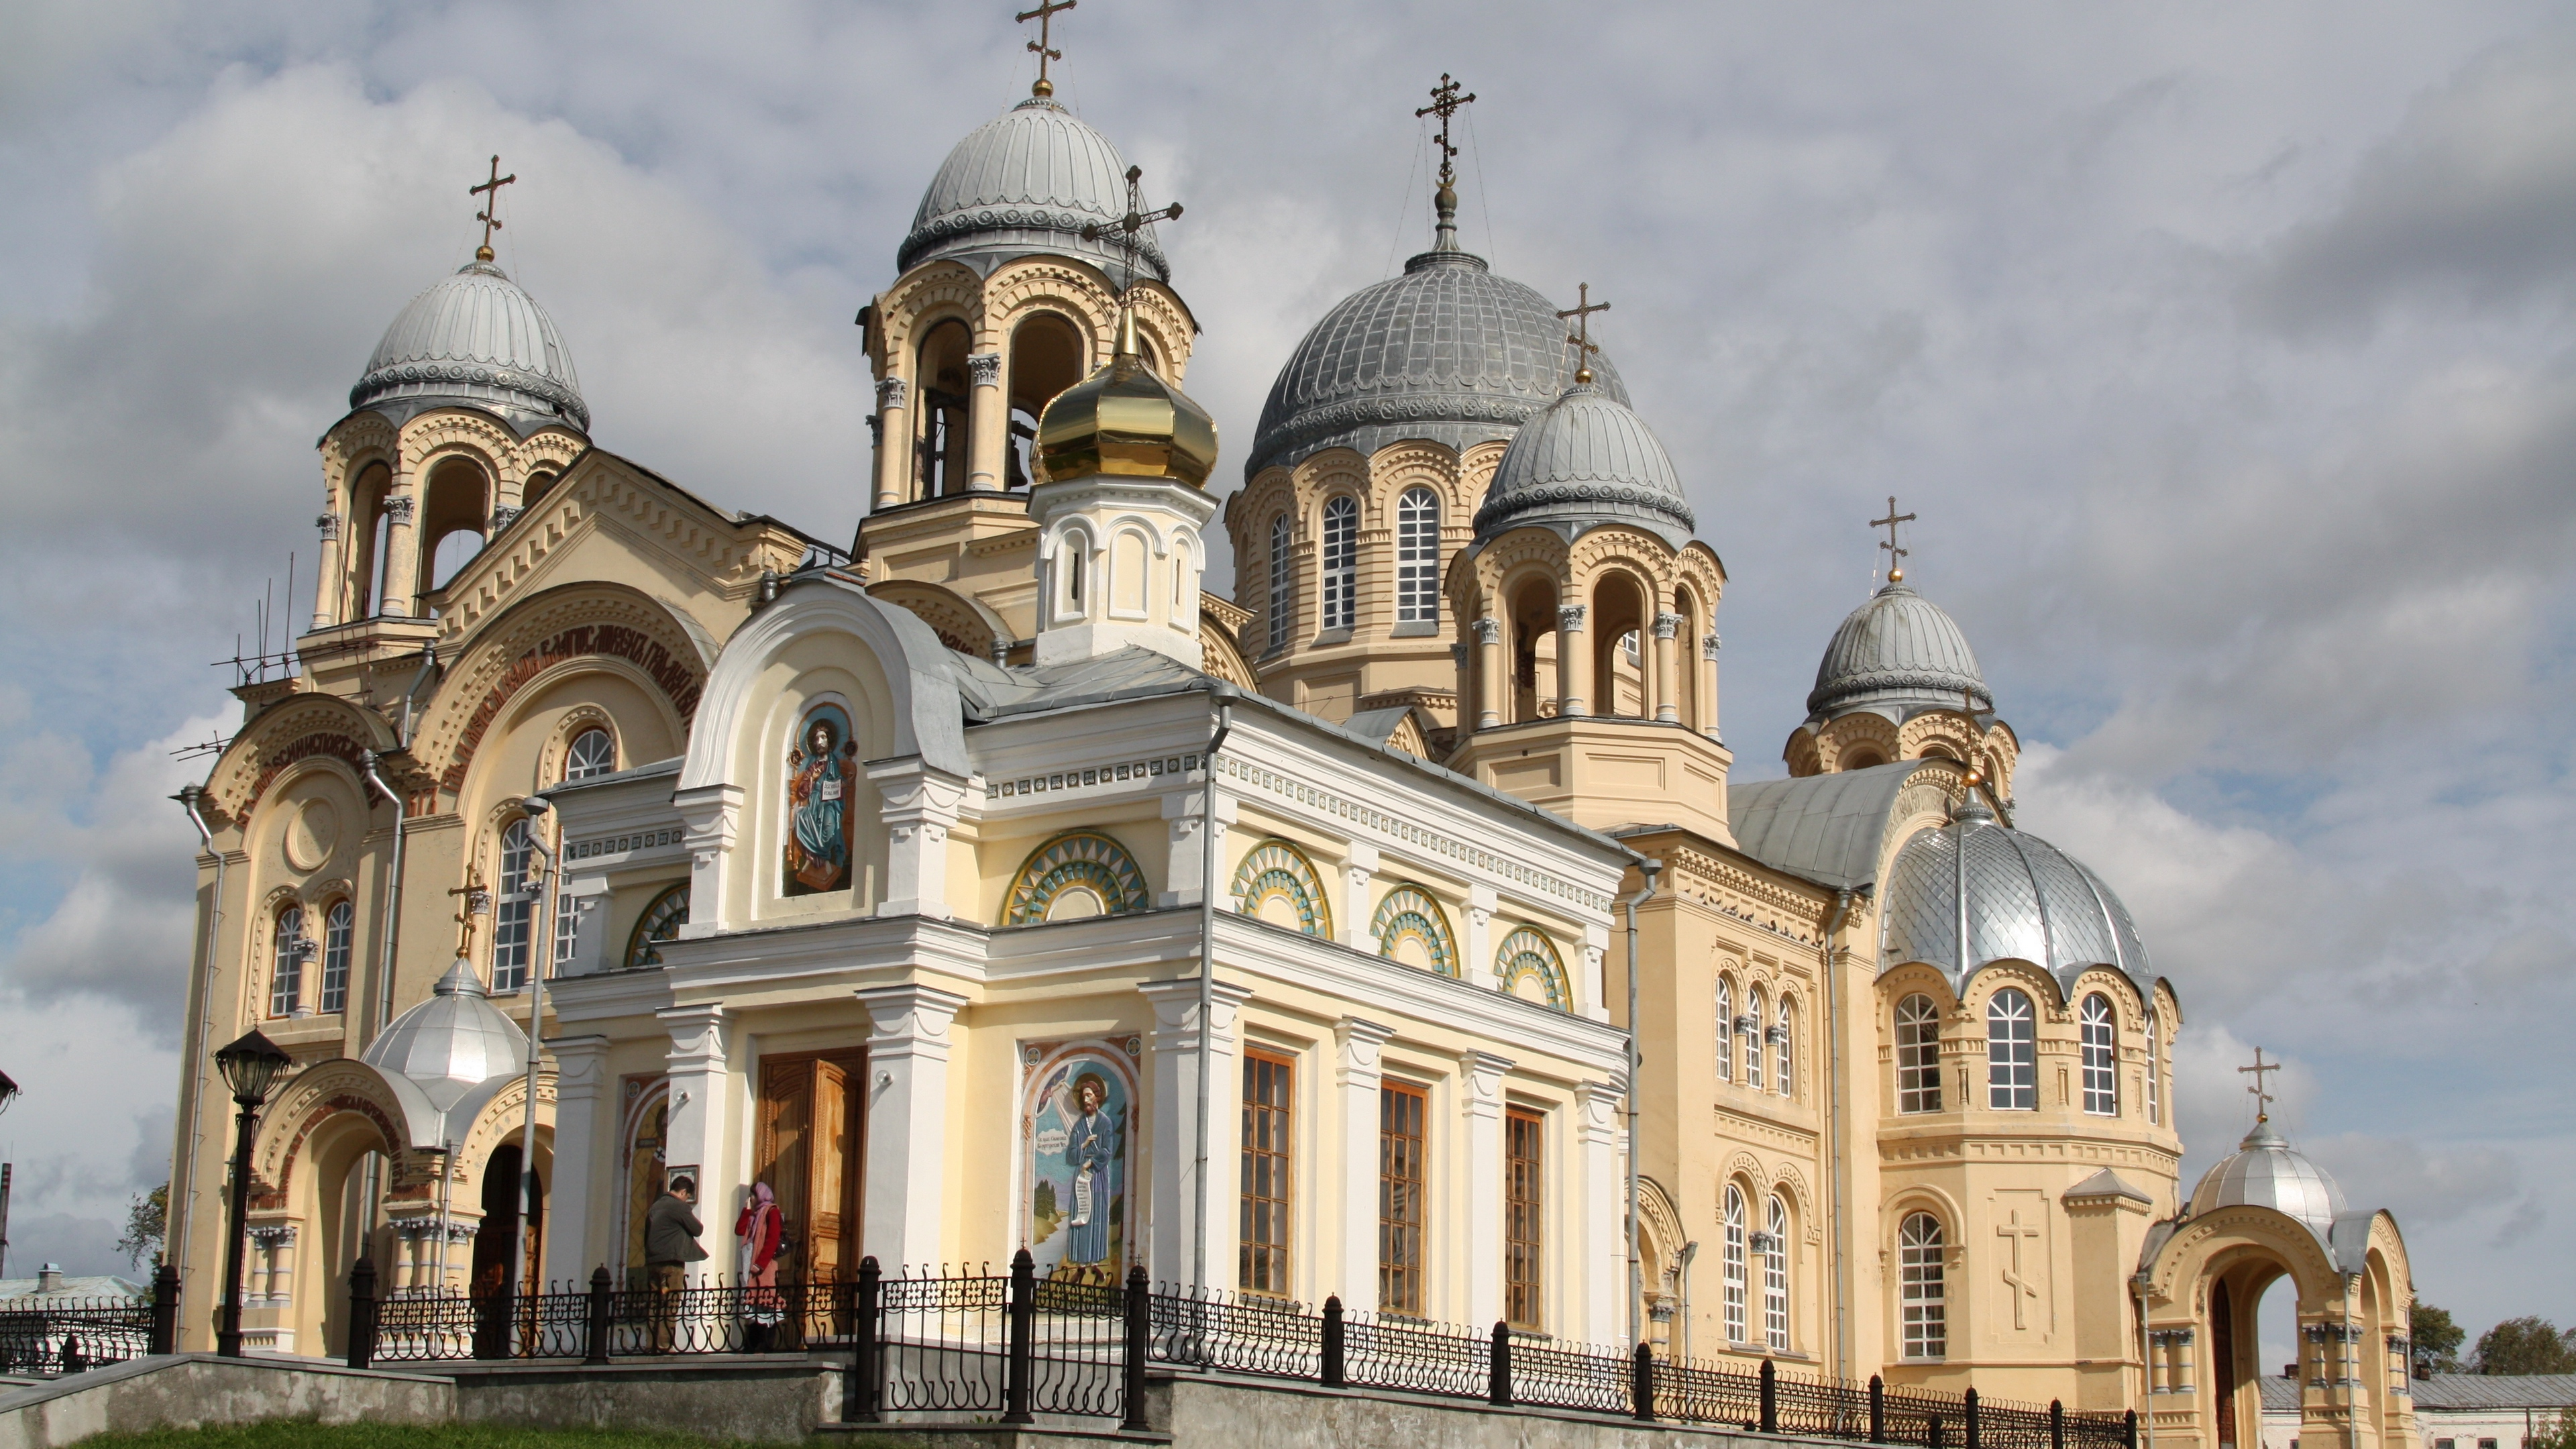 verkhoturye cross cathedral church st nicholas architecture dome paintings carvings 4k 1538067547 - verkhoturye, cross, cathedral, church, st nicholas, architecture, dome, paintings, carvings 4k - verkhoturye, Cross, Cathedral